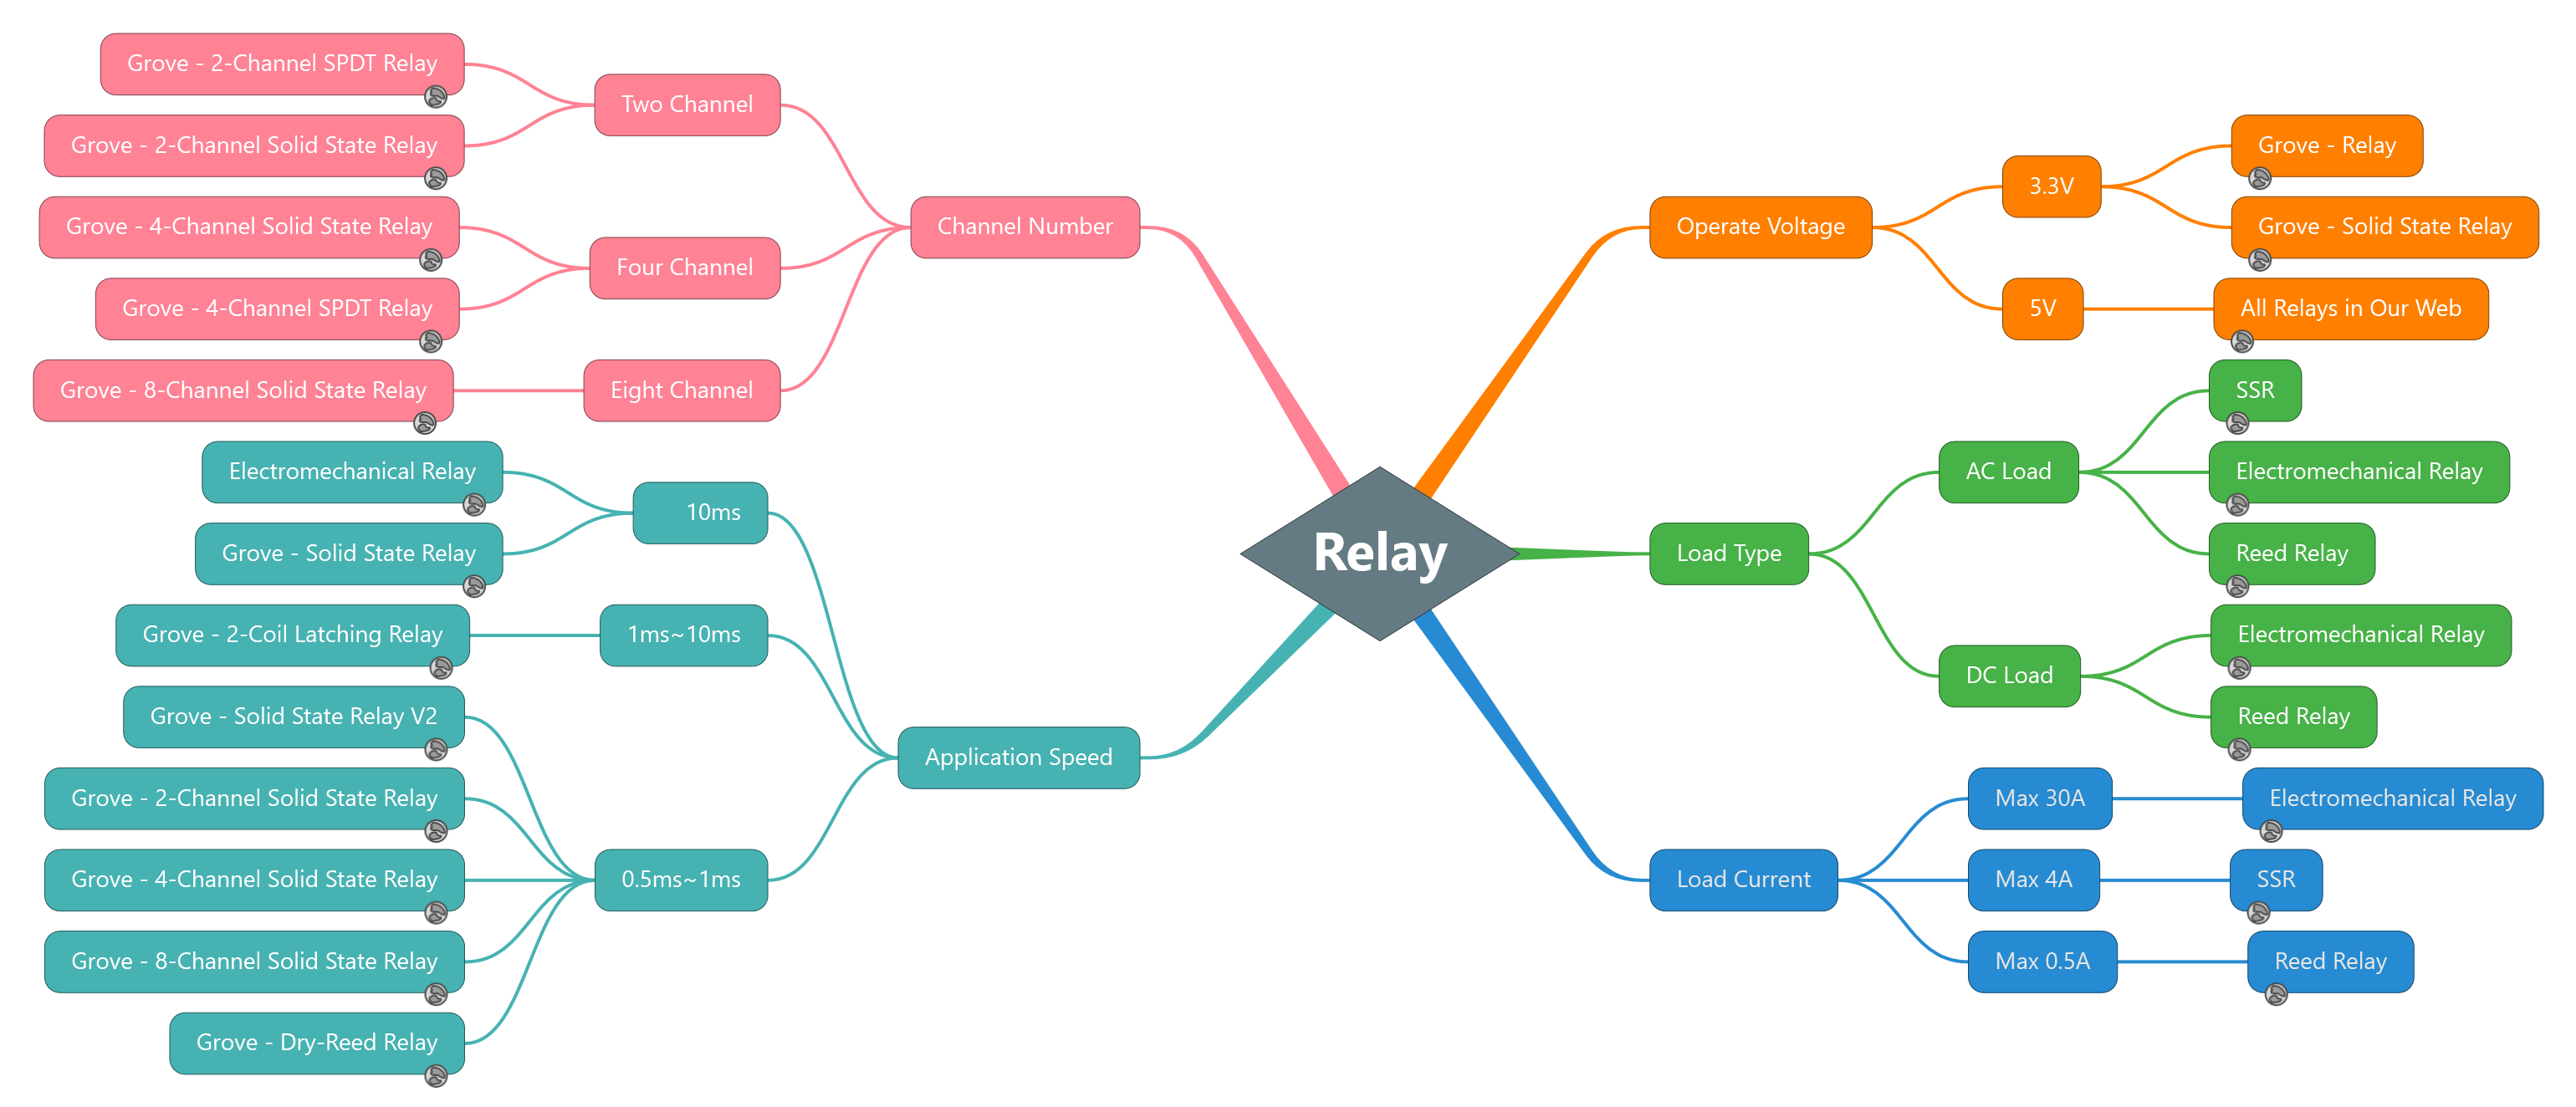 Seeed relay quick selection diagram